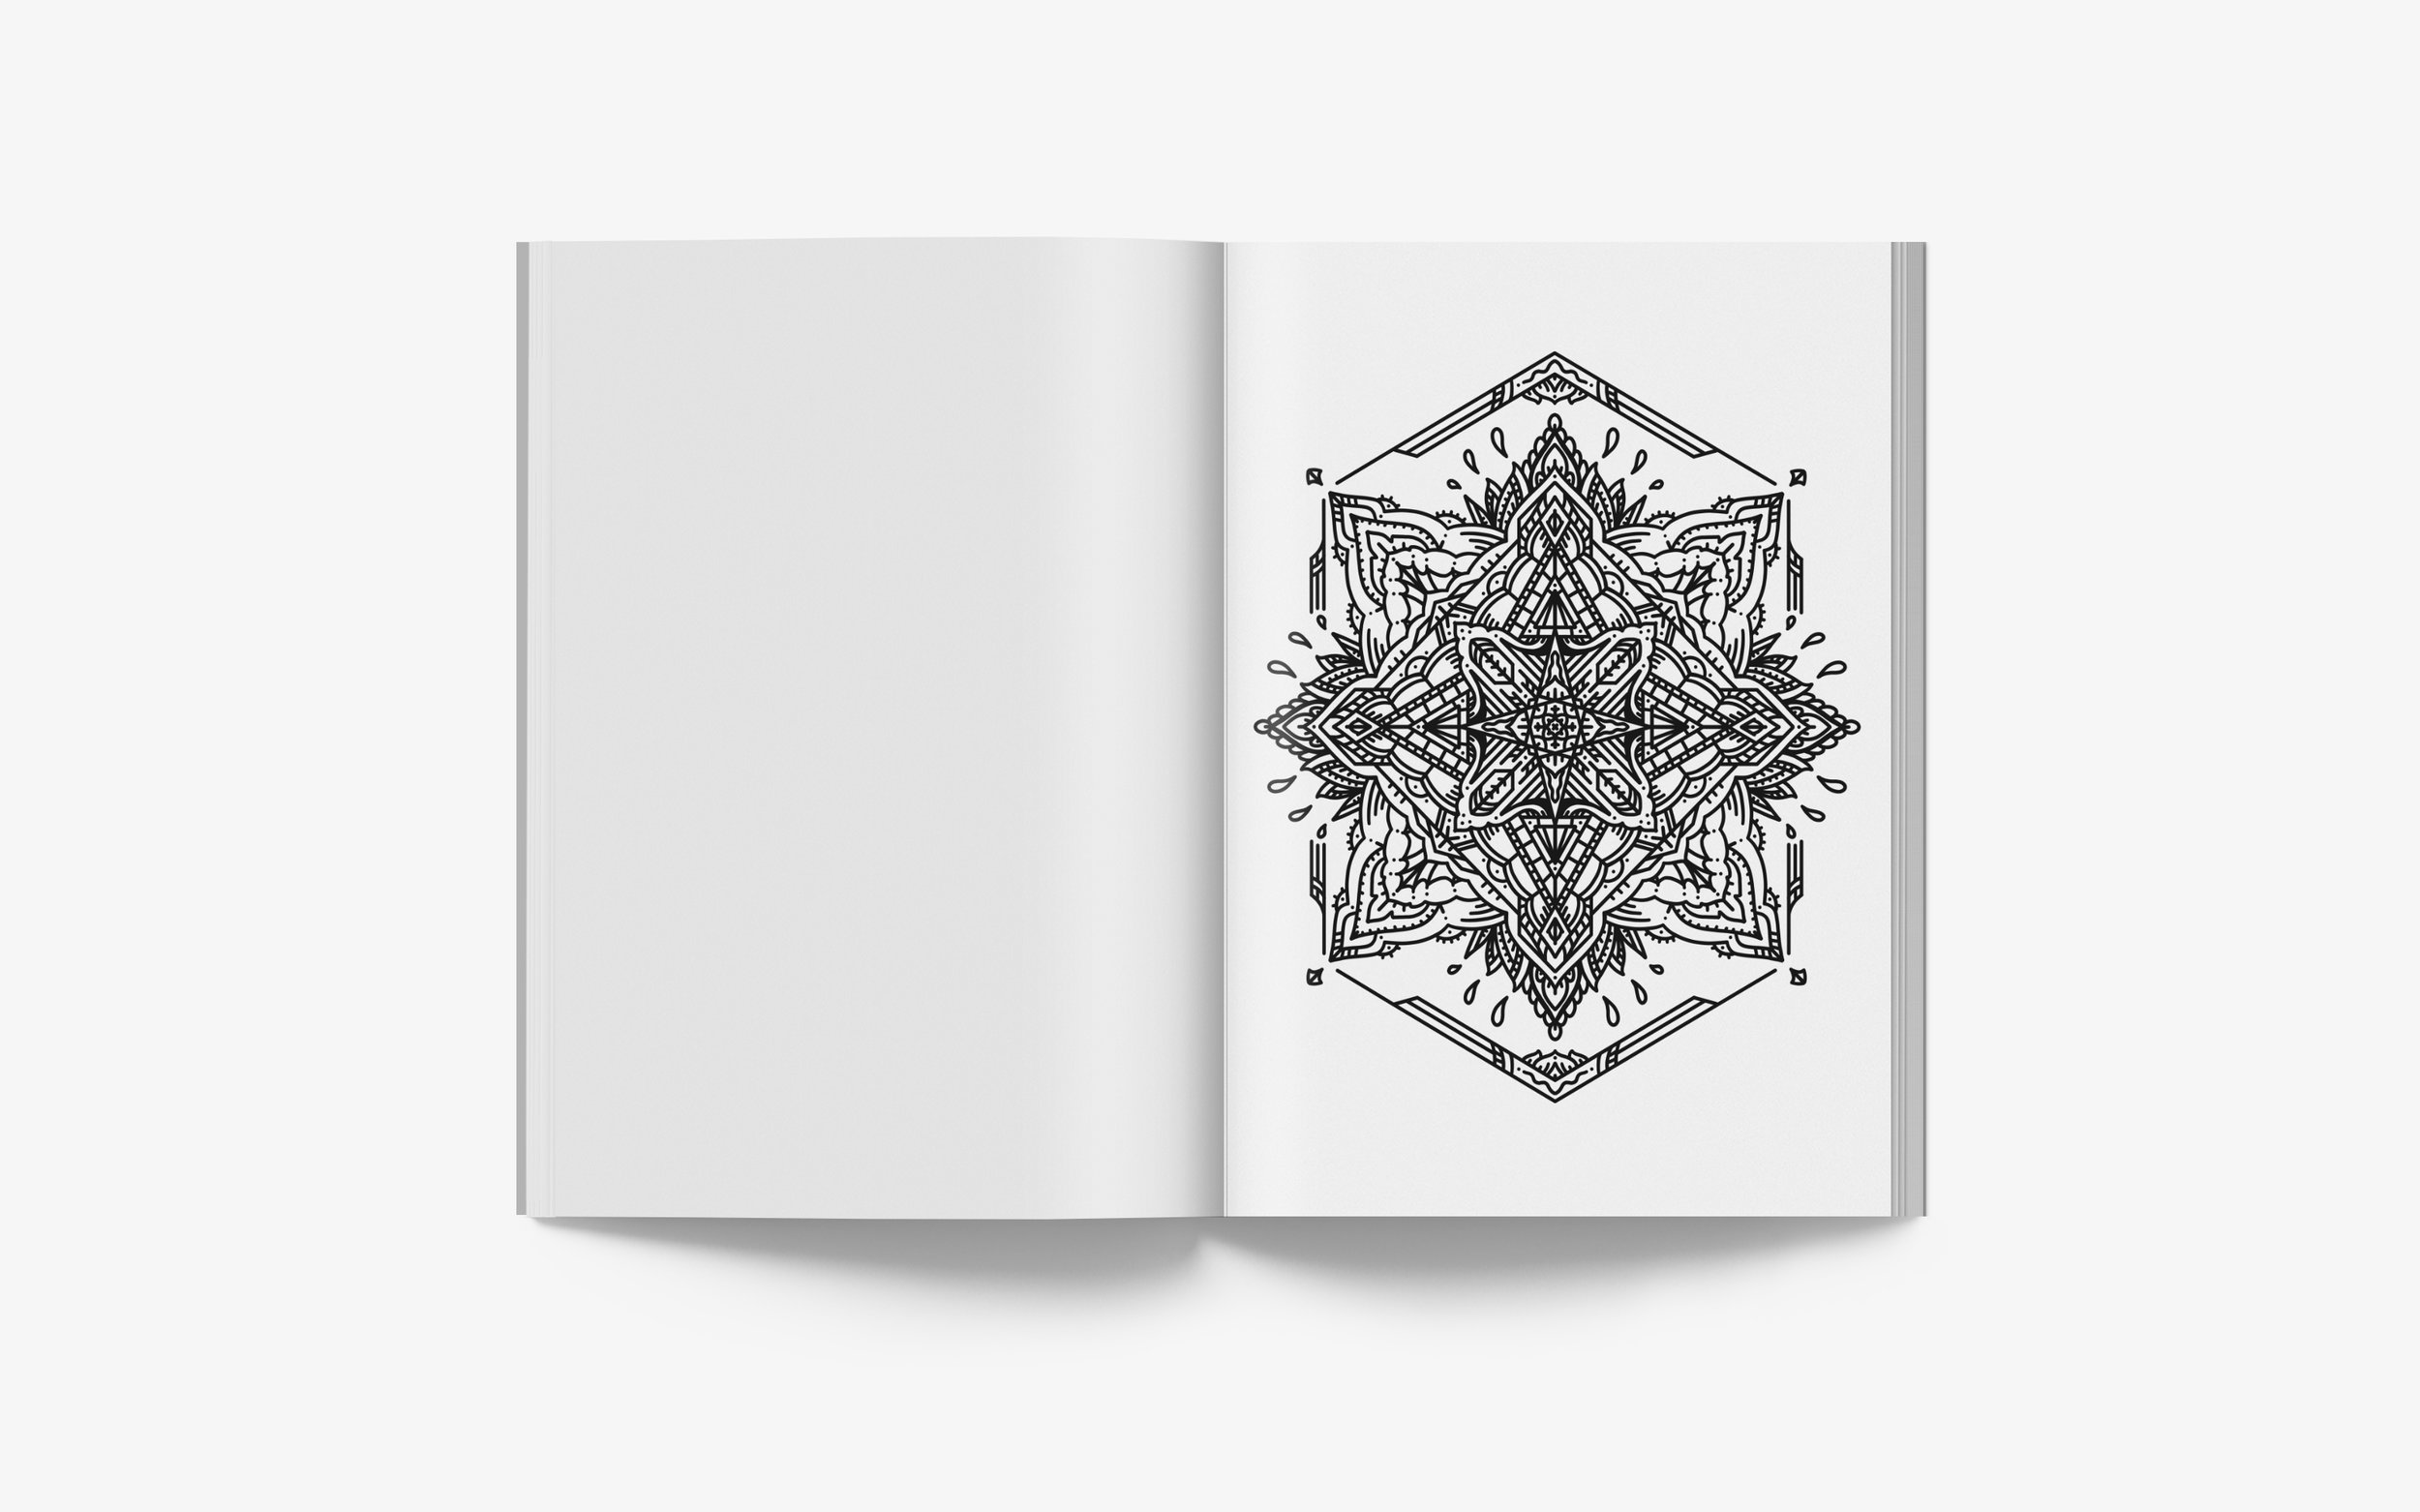 mx-coloringbook-v1-showcase-pages-1.2.jpg